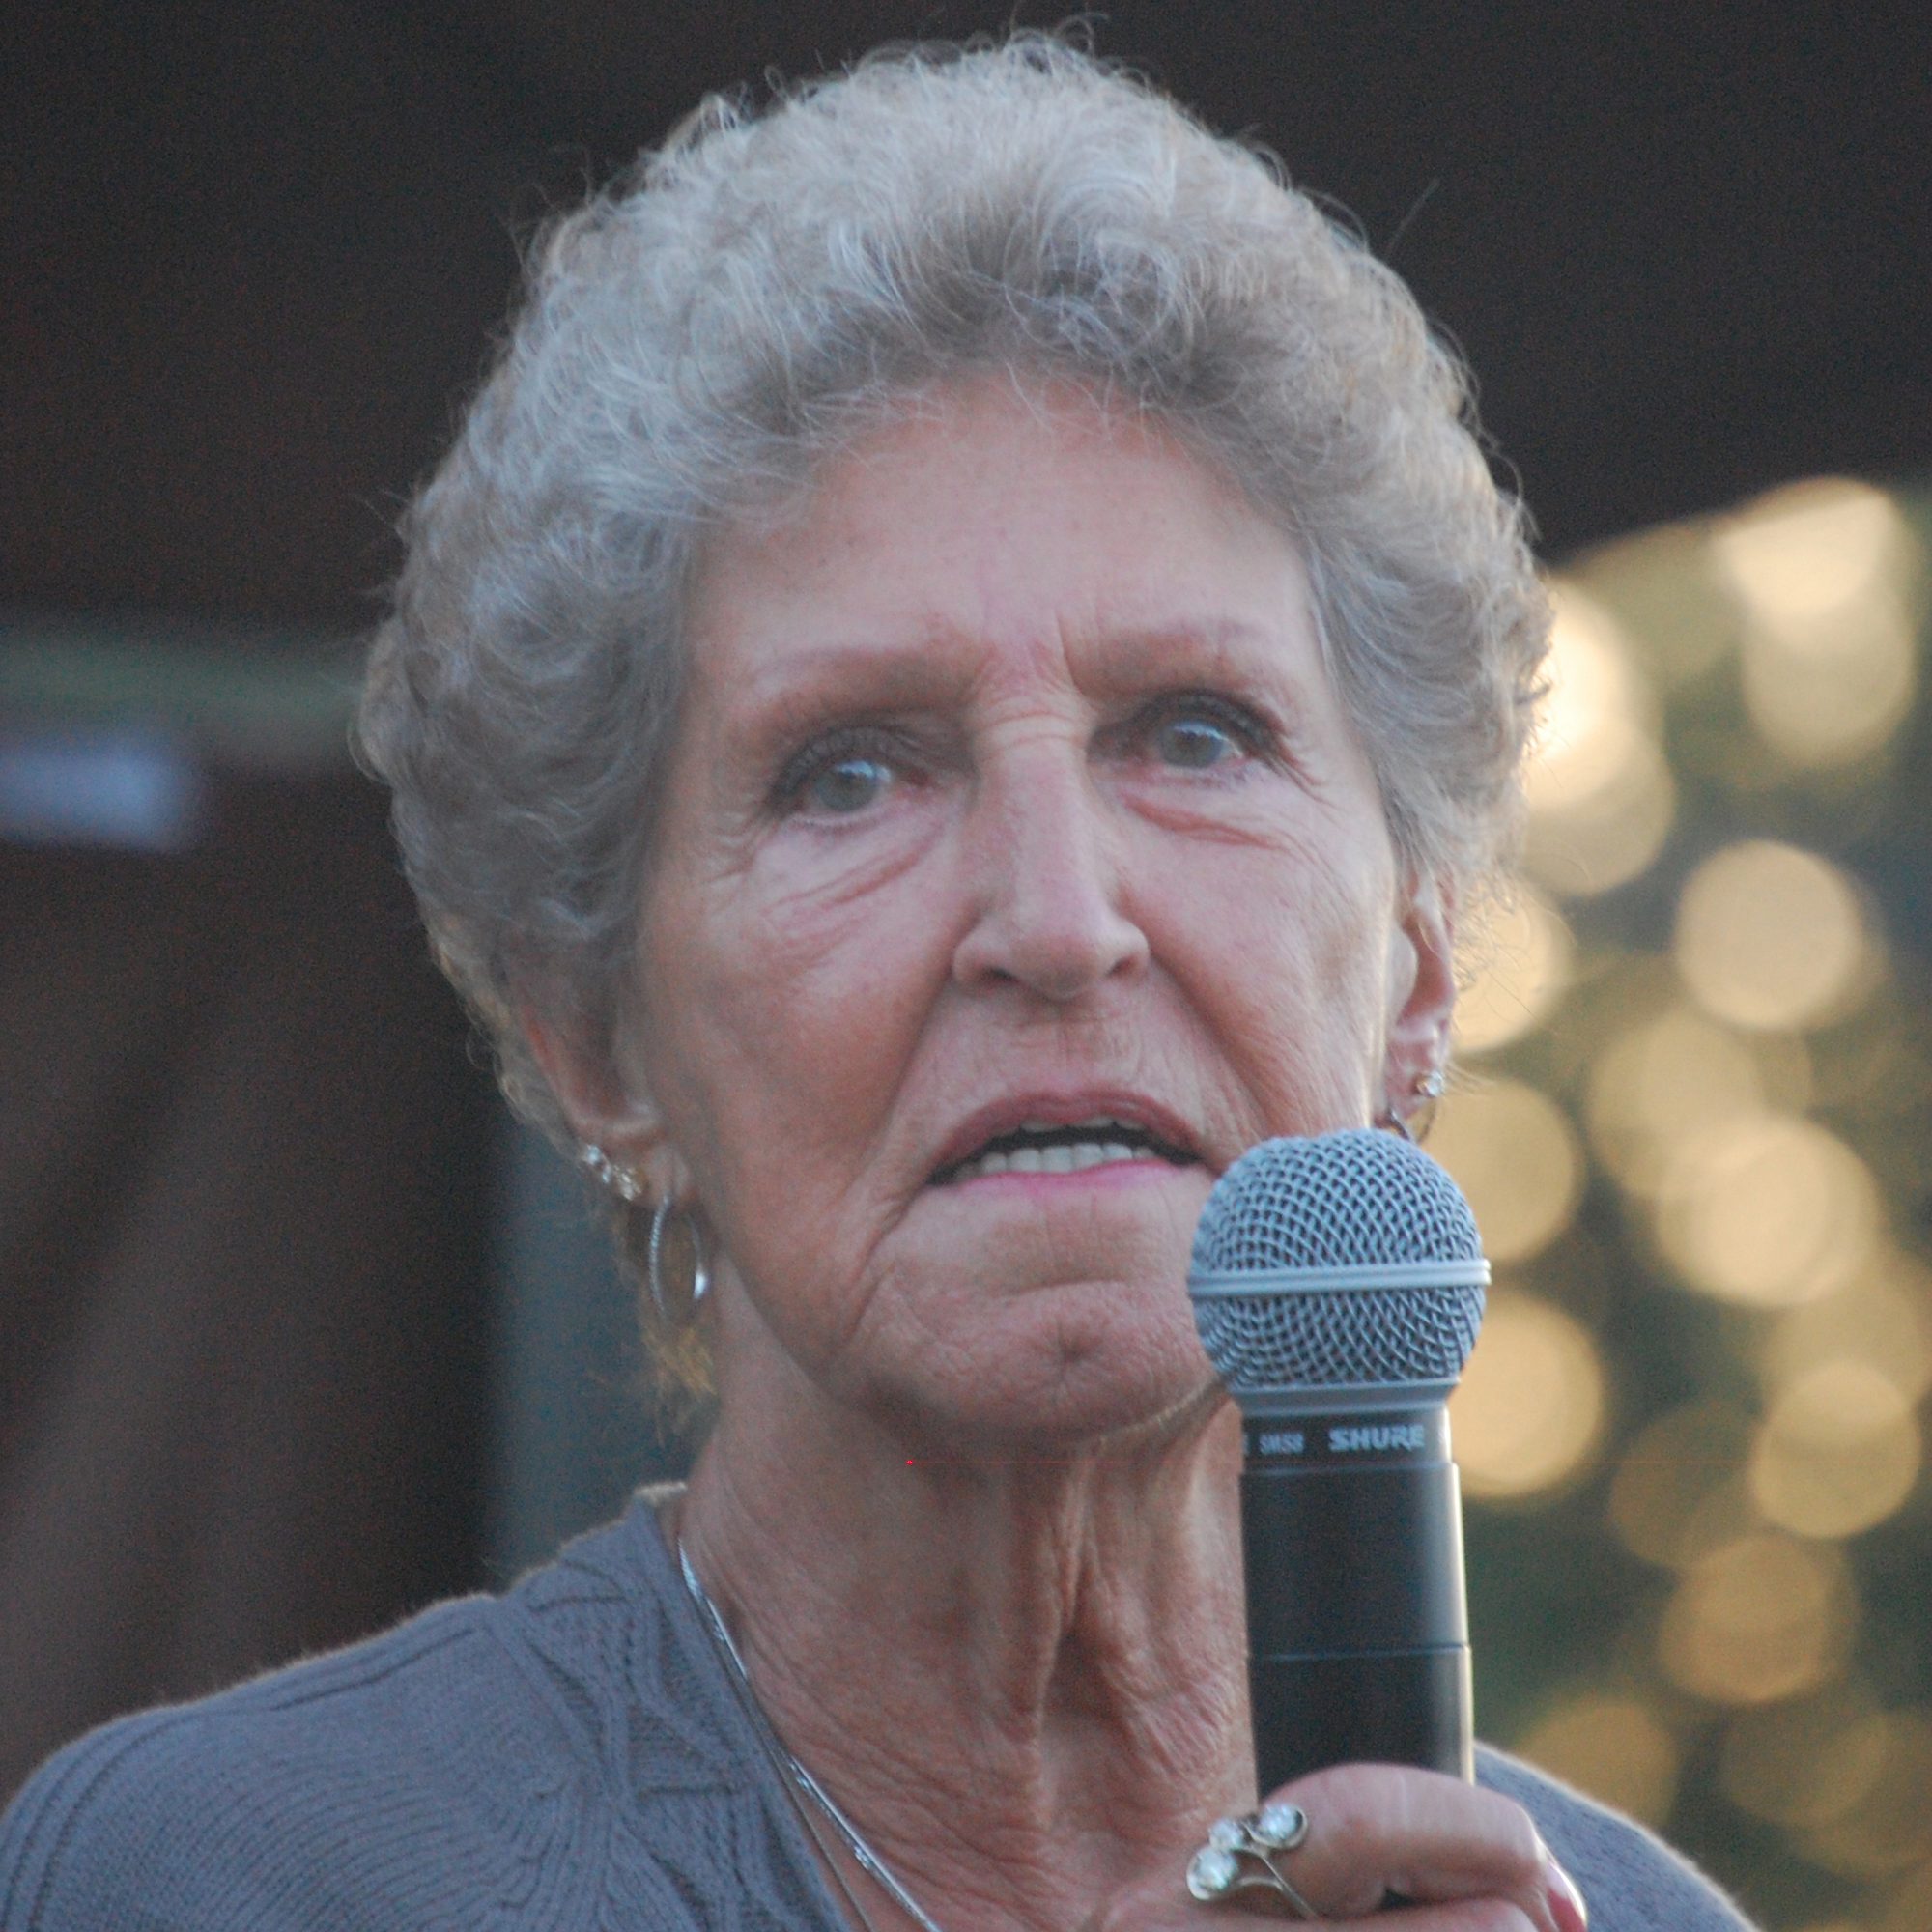 Nan Busby speaking at a graduation ceremony.